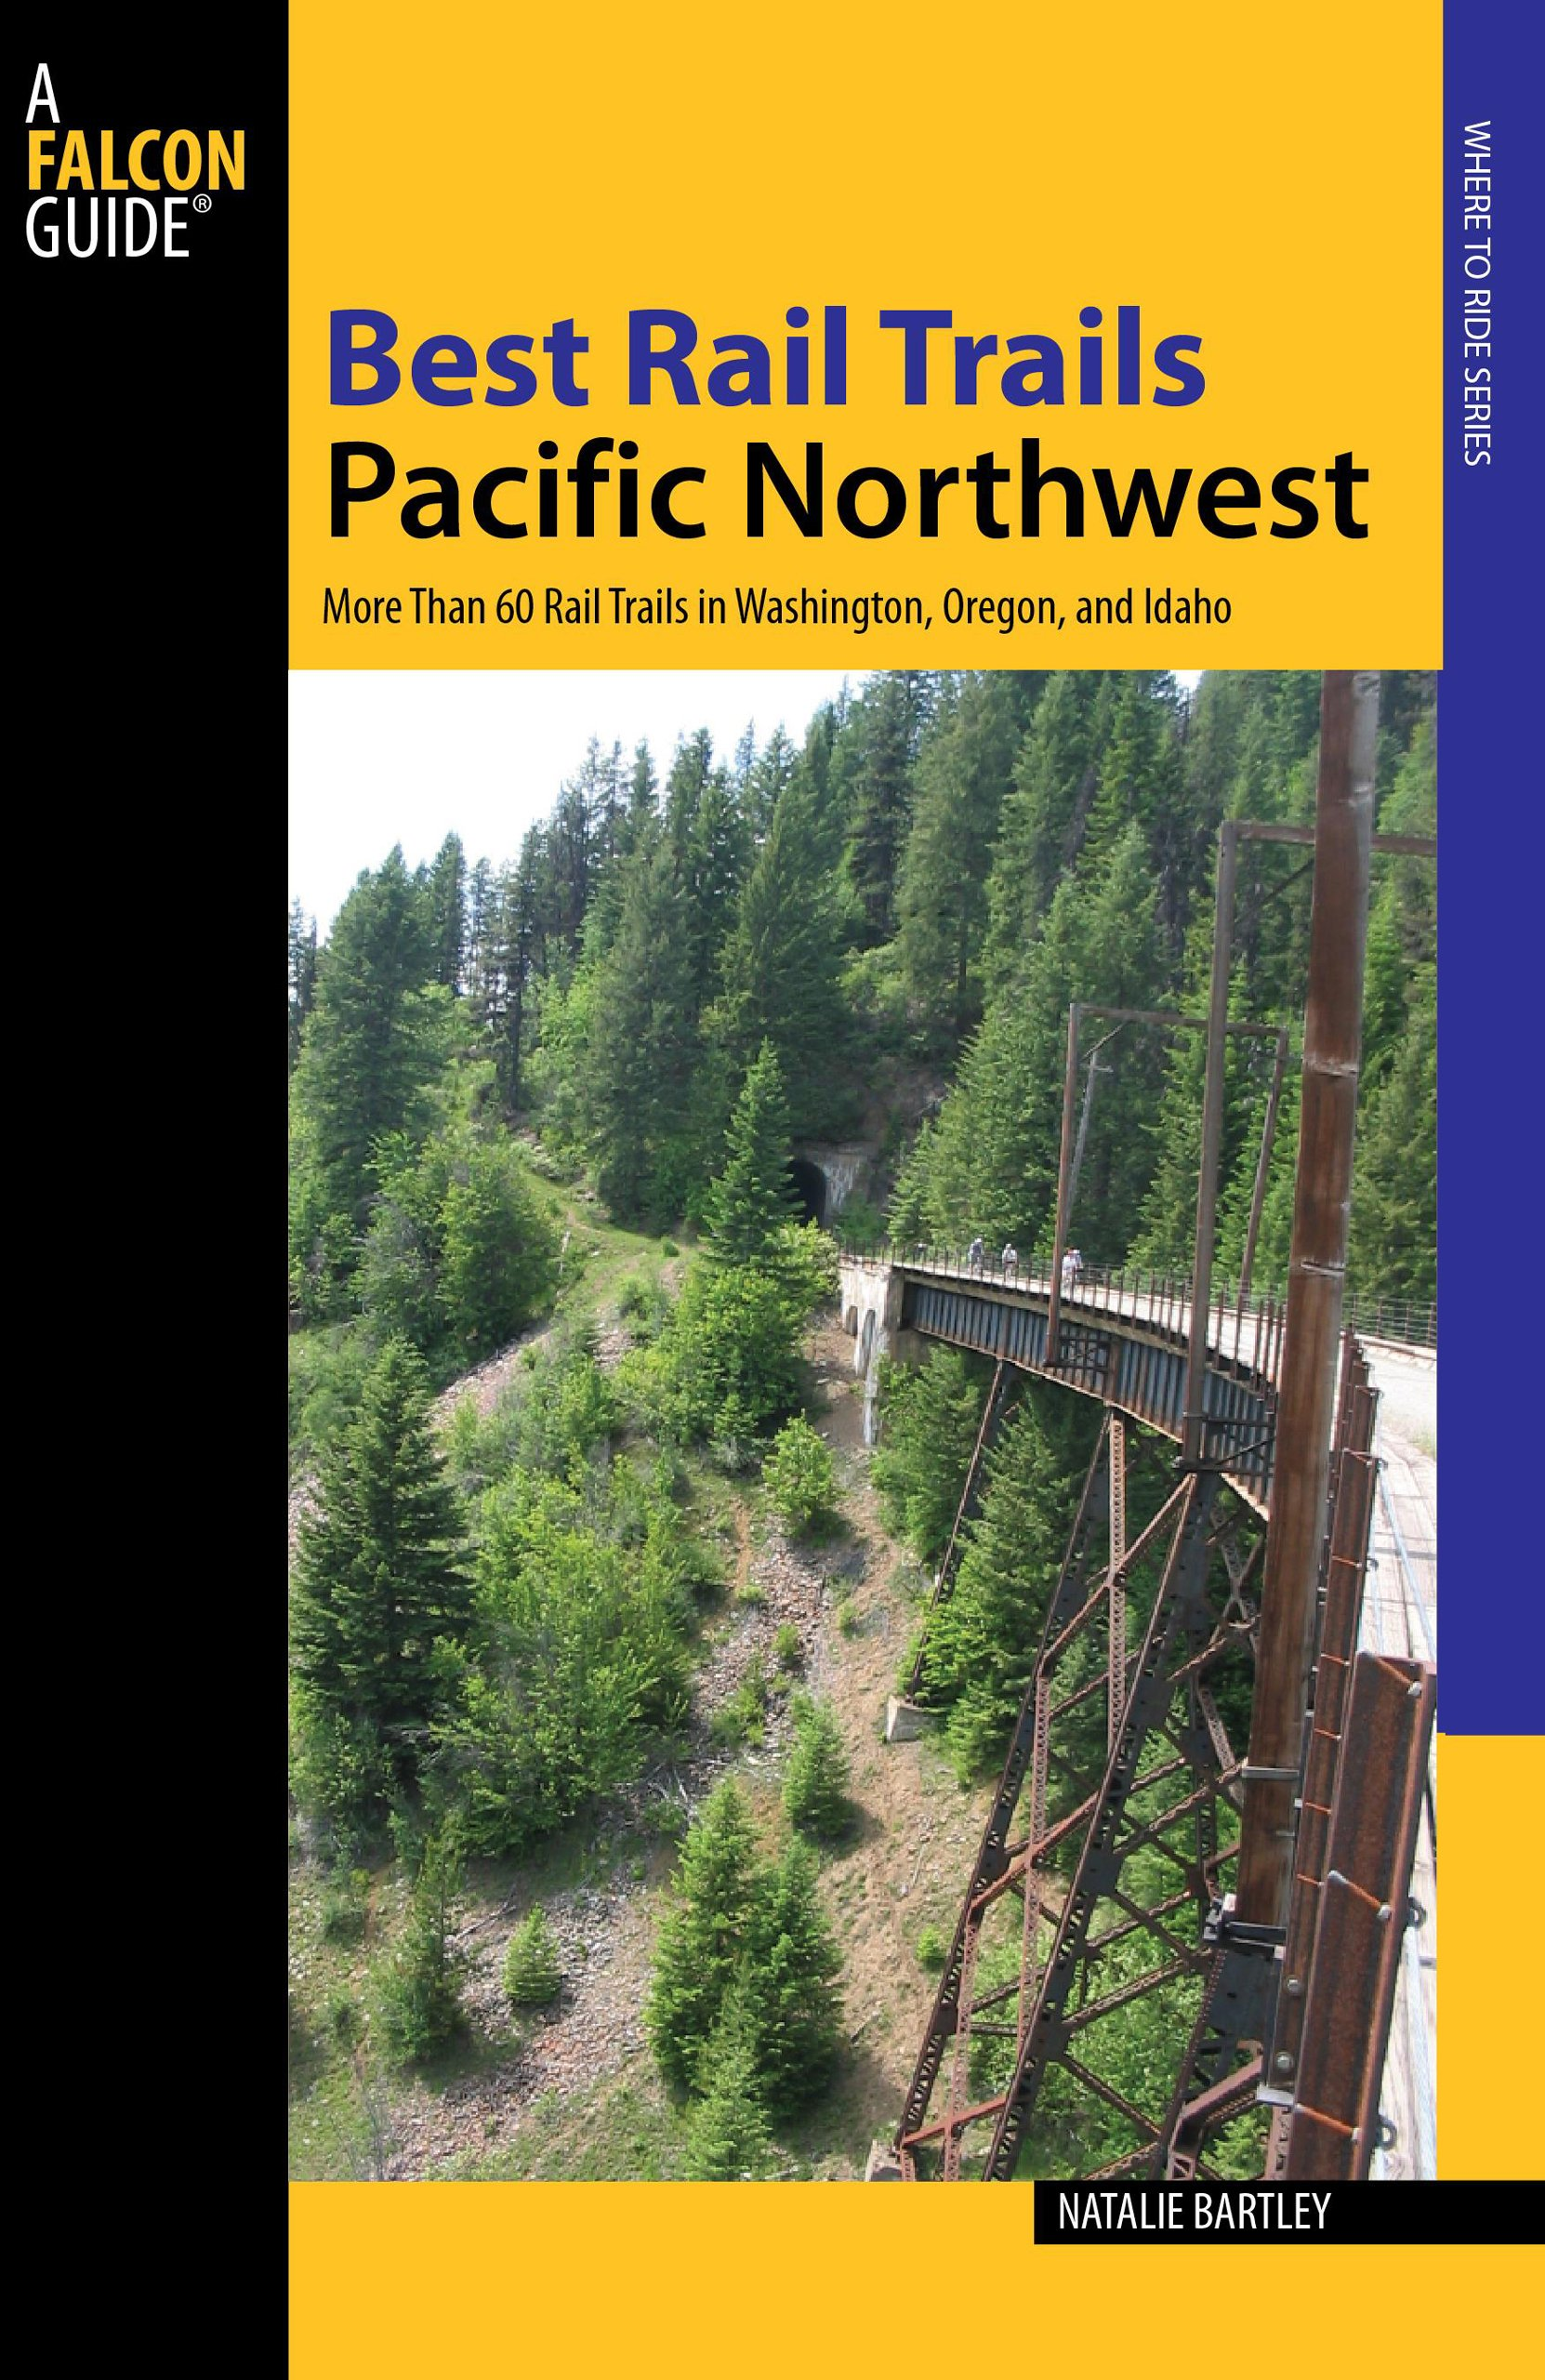 Rails To Trails Oregon Map Best Rail Trails Pacific Northwest: More Than 60 Rail Trails in